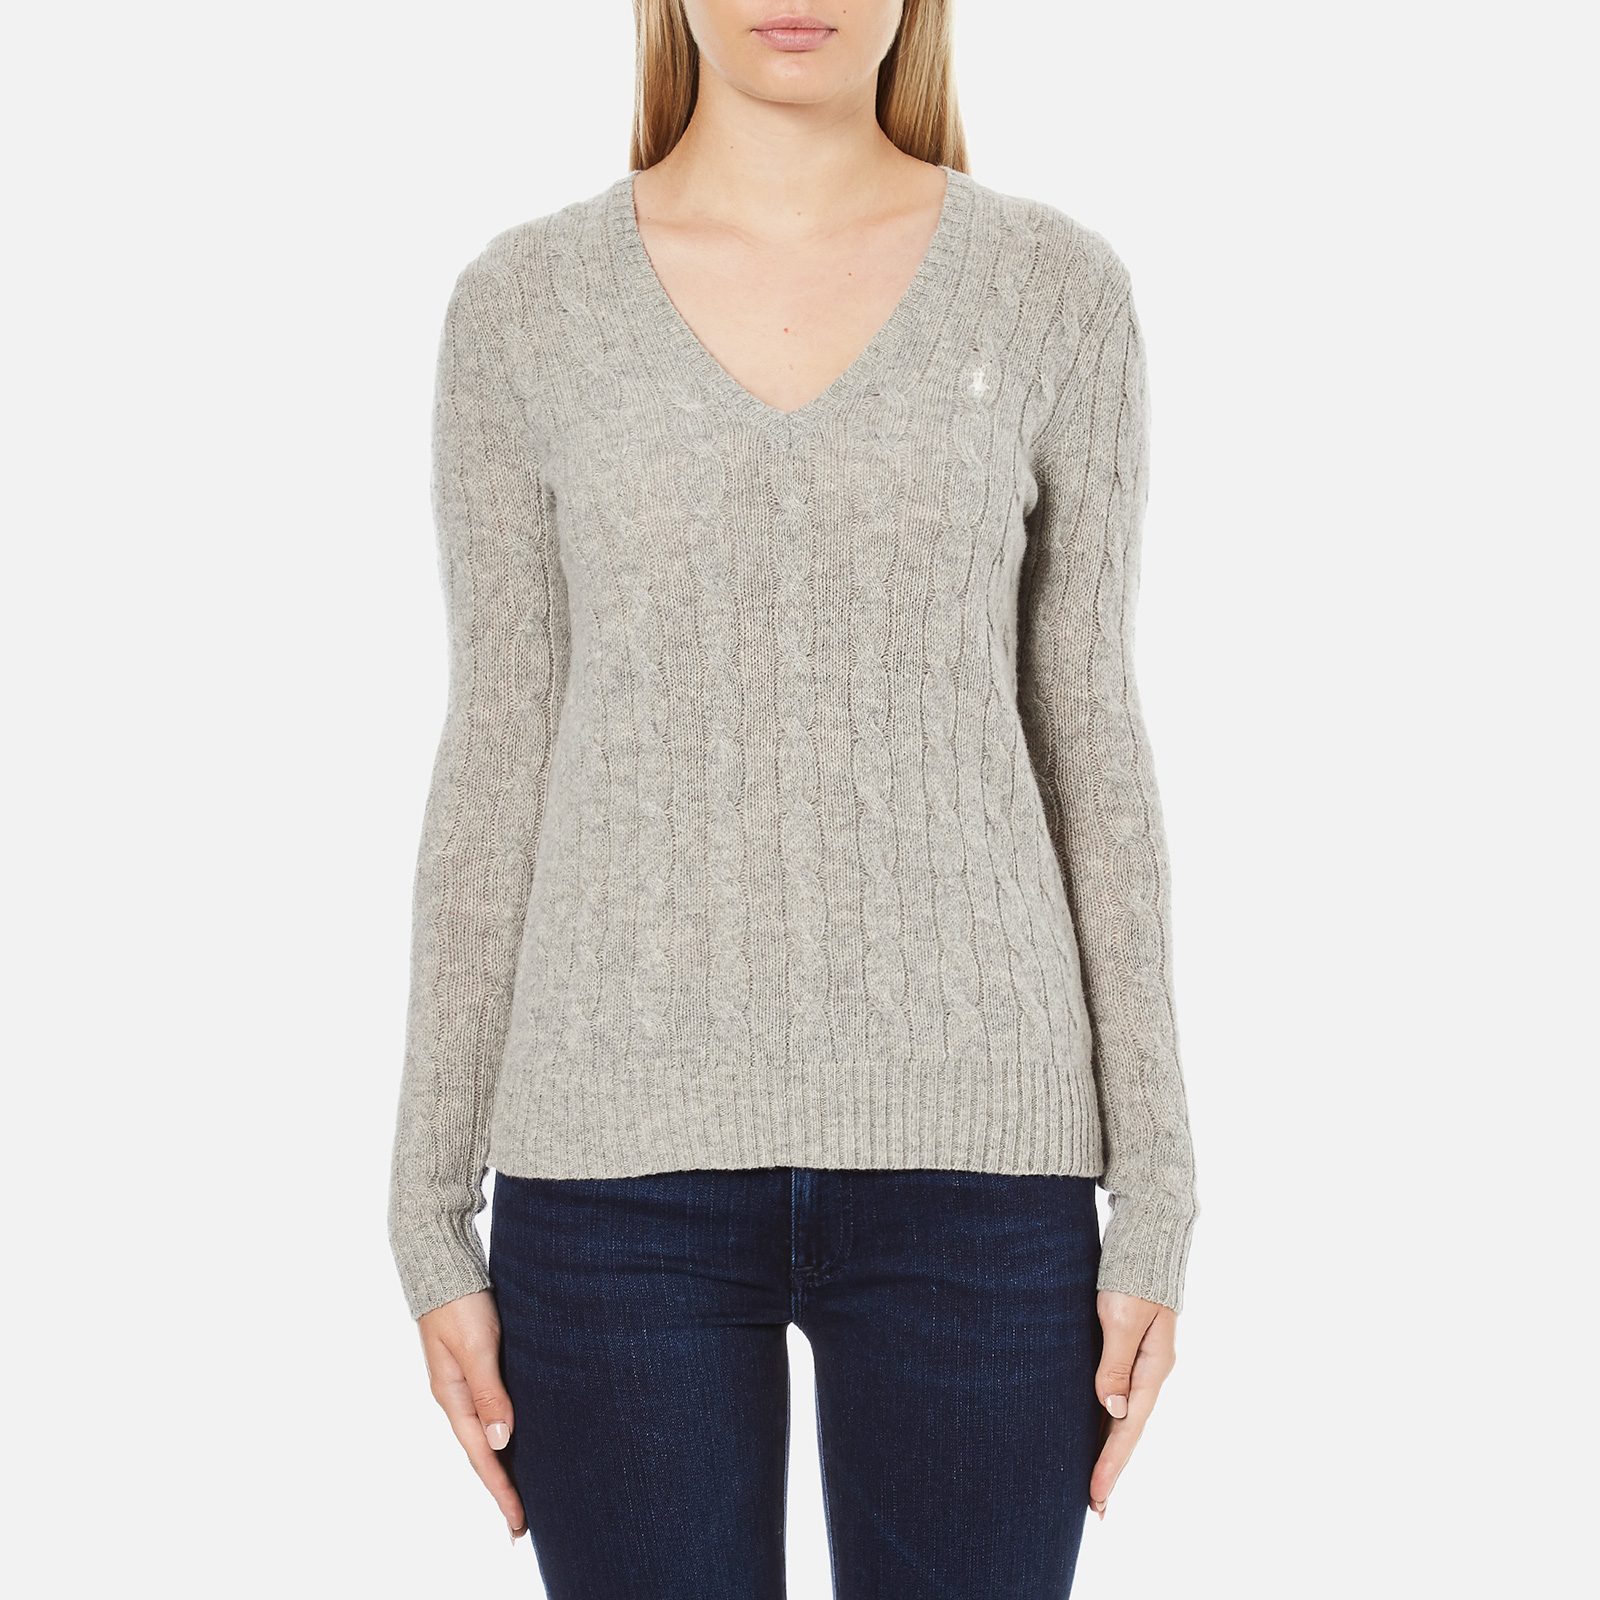 22583ddbe Polo Ralph Lauren Women s Kimberly Cashmere Blend Jumper - Light Vintage  Heather - Free UK Delivery over £50